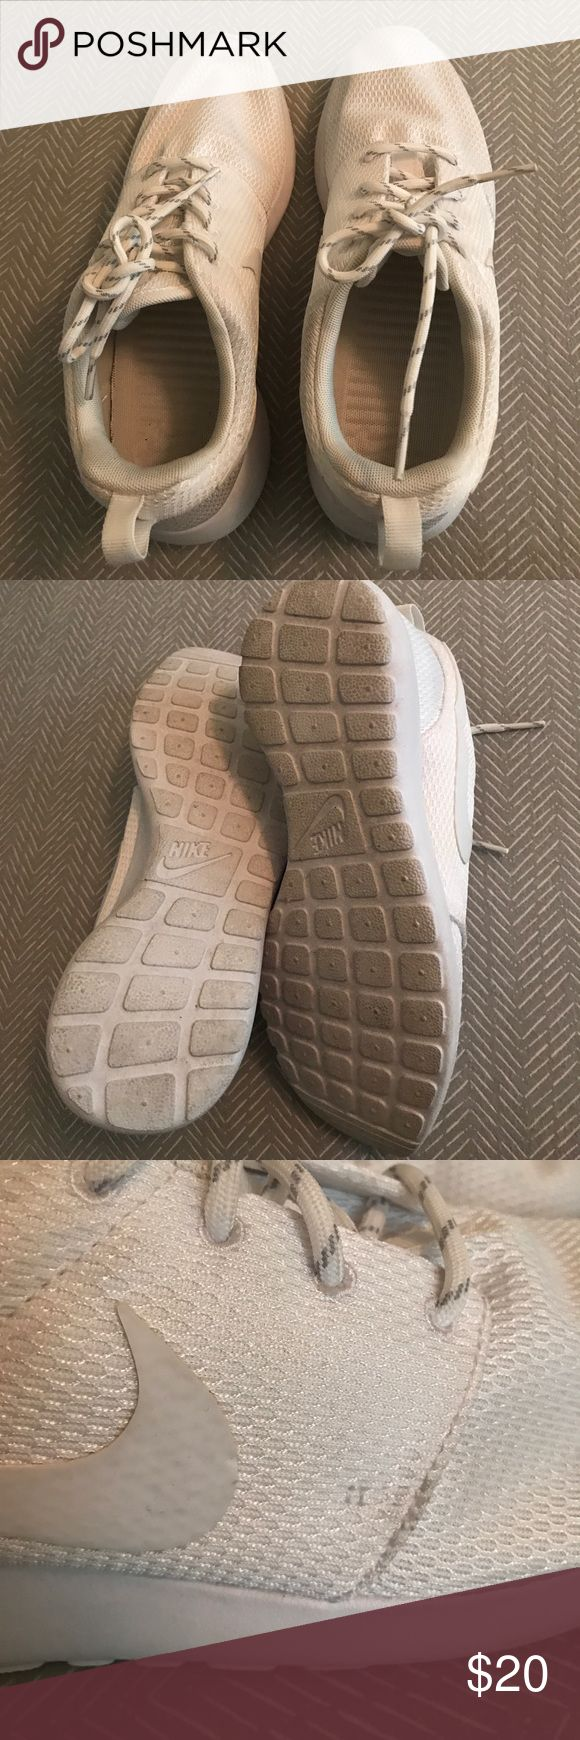 Nike all white Roshe run Used twice but in excellent condition. Clean inside and out except for veterans minor dirt ( see pics) from use. Does not affect use. Smoke and pet free home Nike Shoes Athletic Shoes